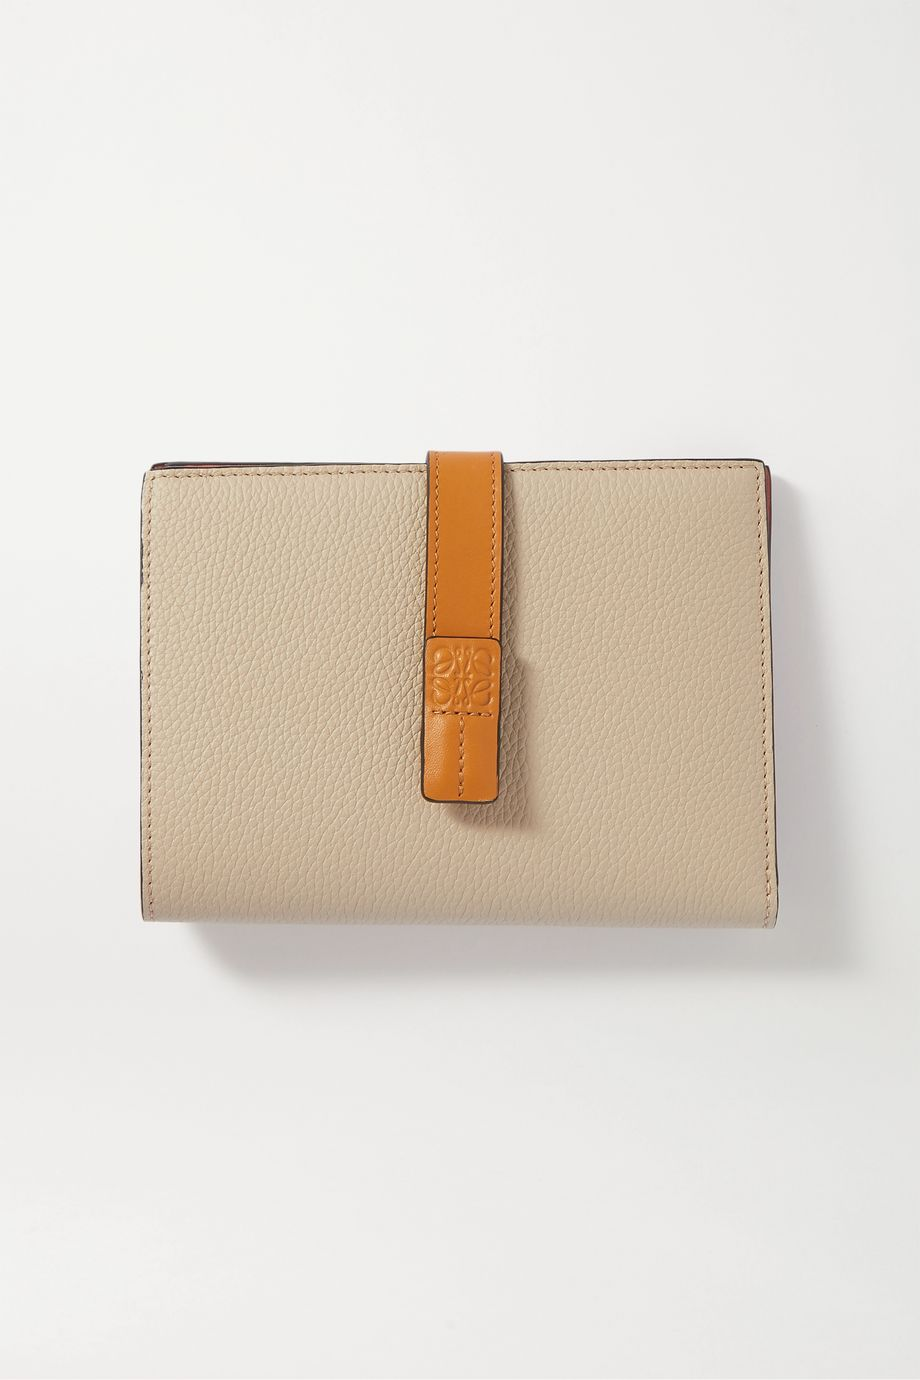 Loewe Vertical small textured-leather wallet